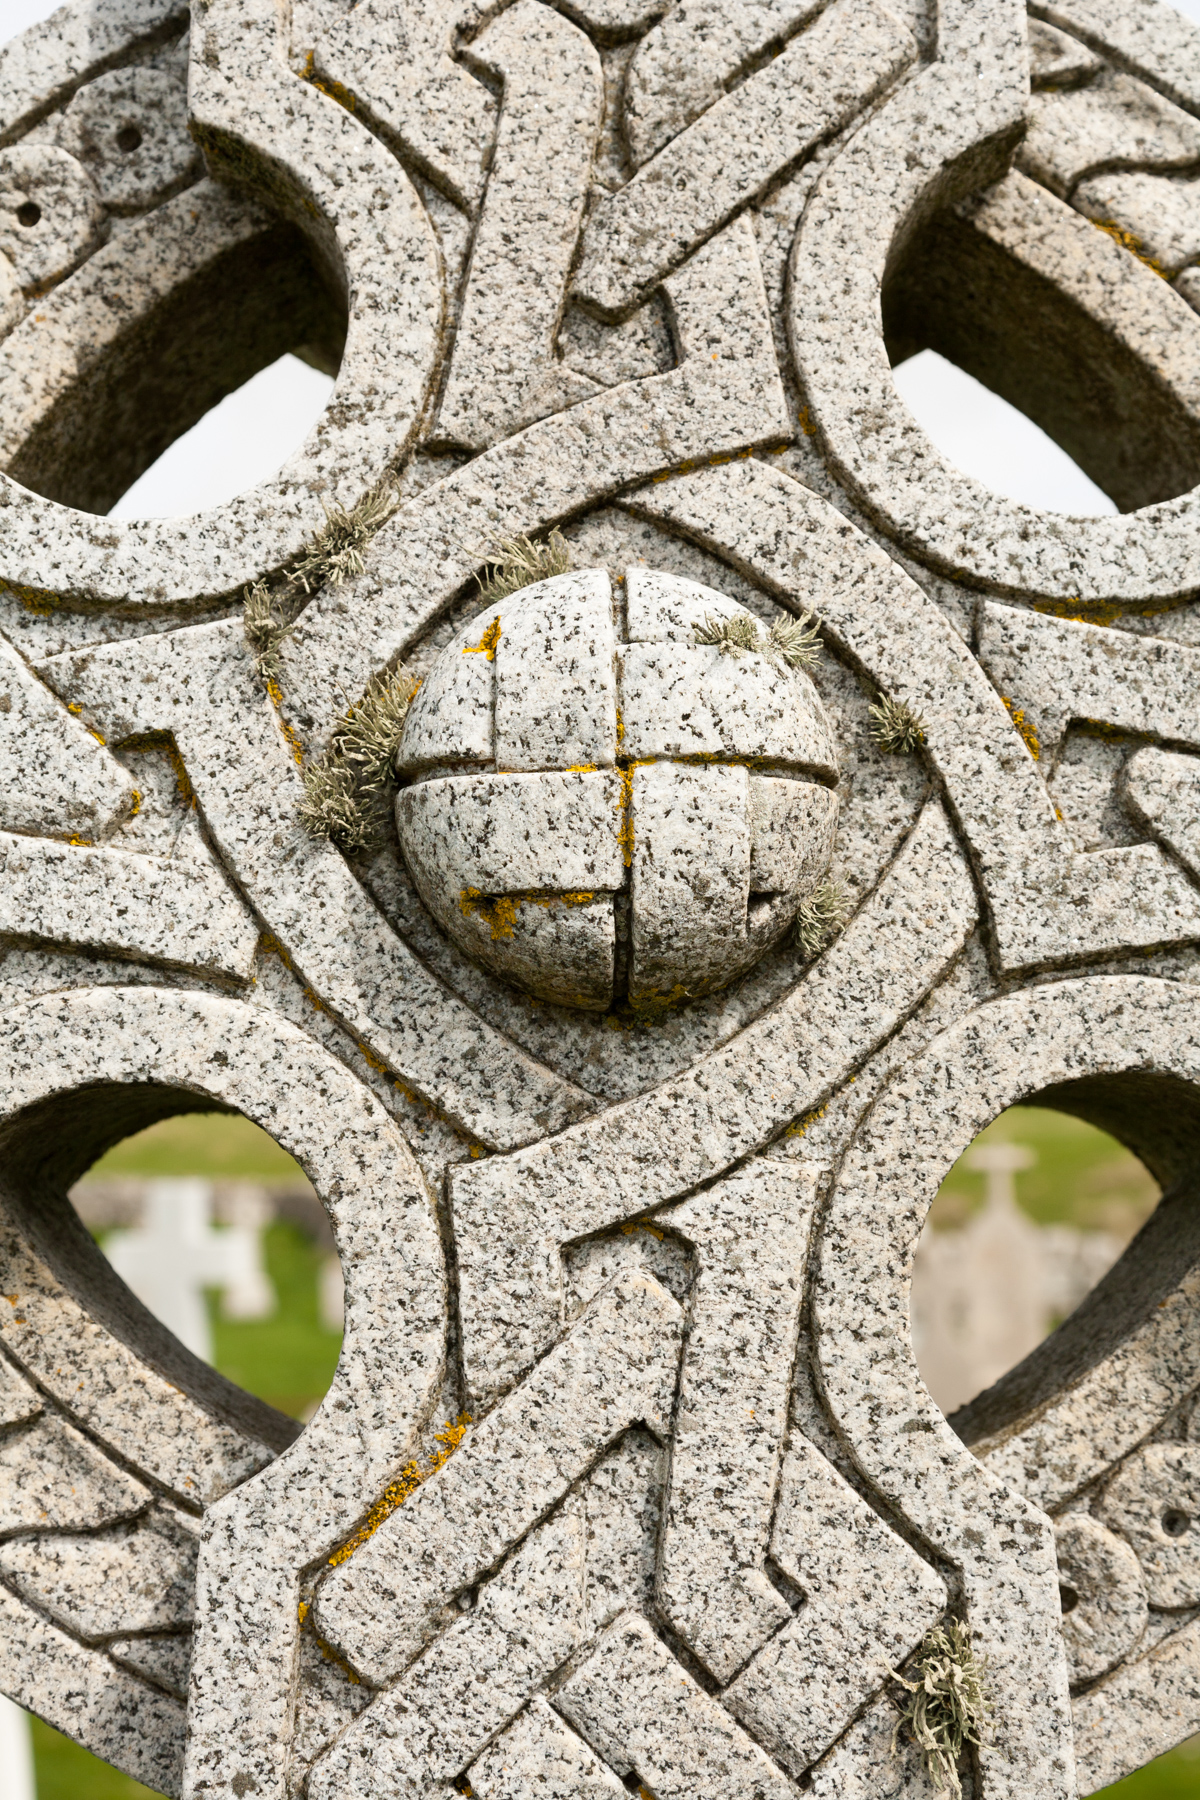 Close up showing the detail of Celtic cross grave in Barra cemetary. Moss and weathered rock visible.